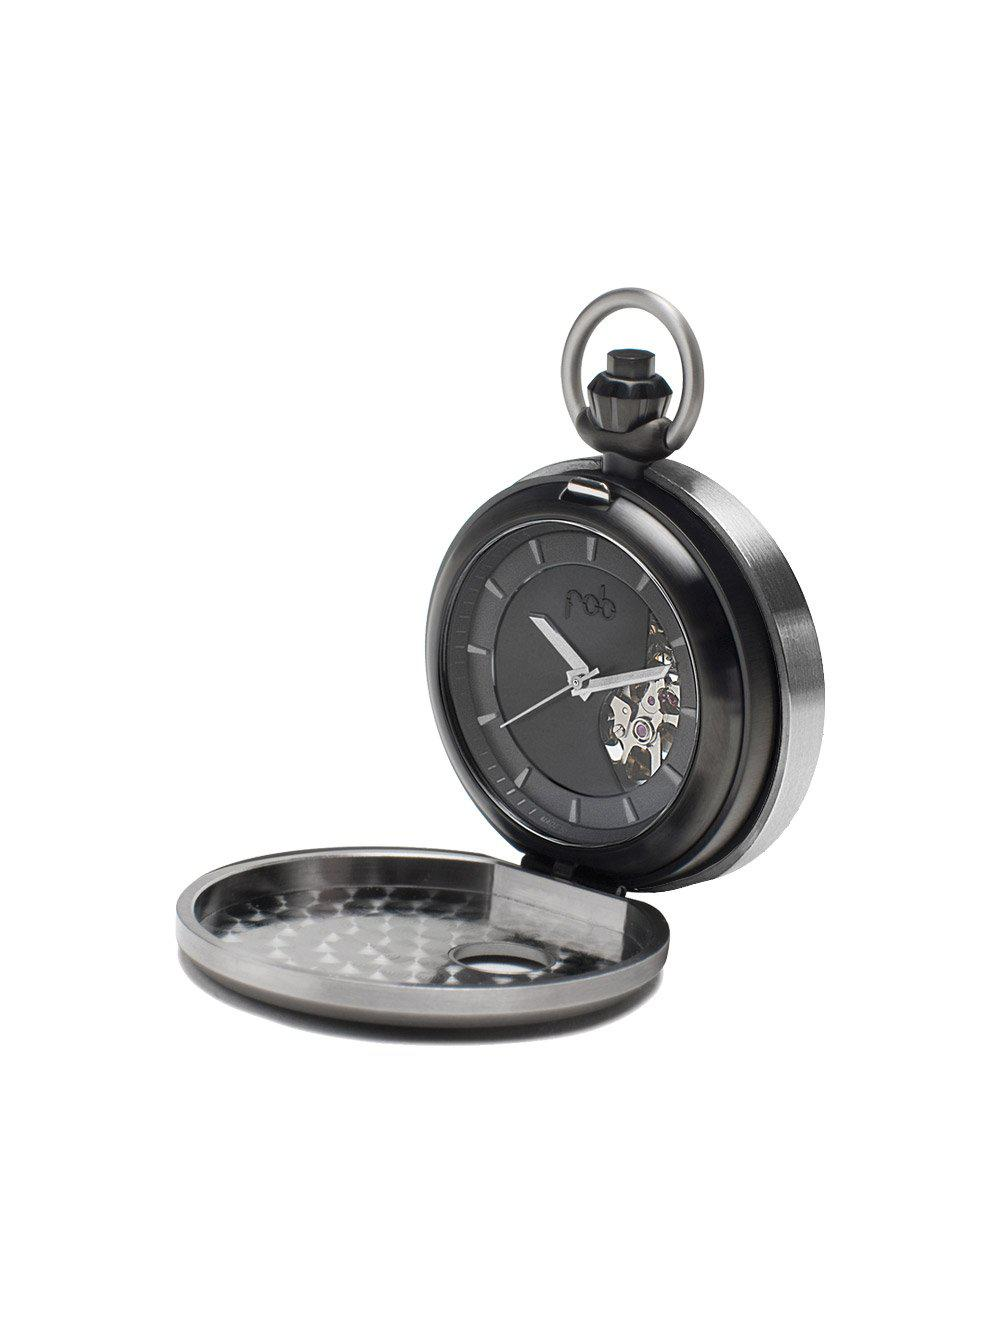 Black Legacy Pocket Watch - Watches - Fob - Elevastor